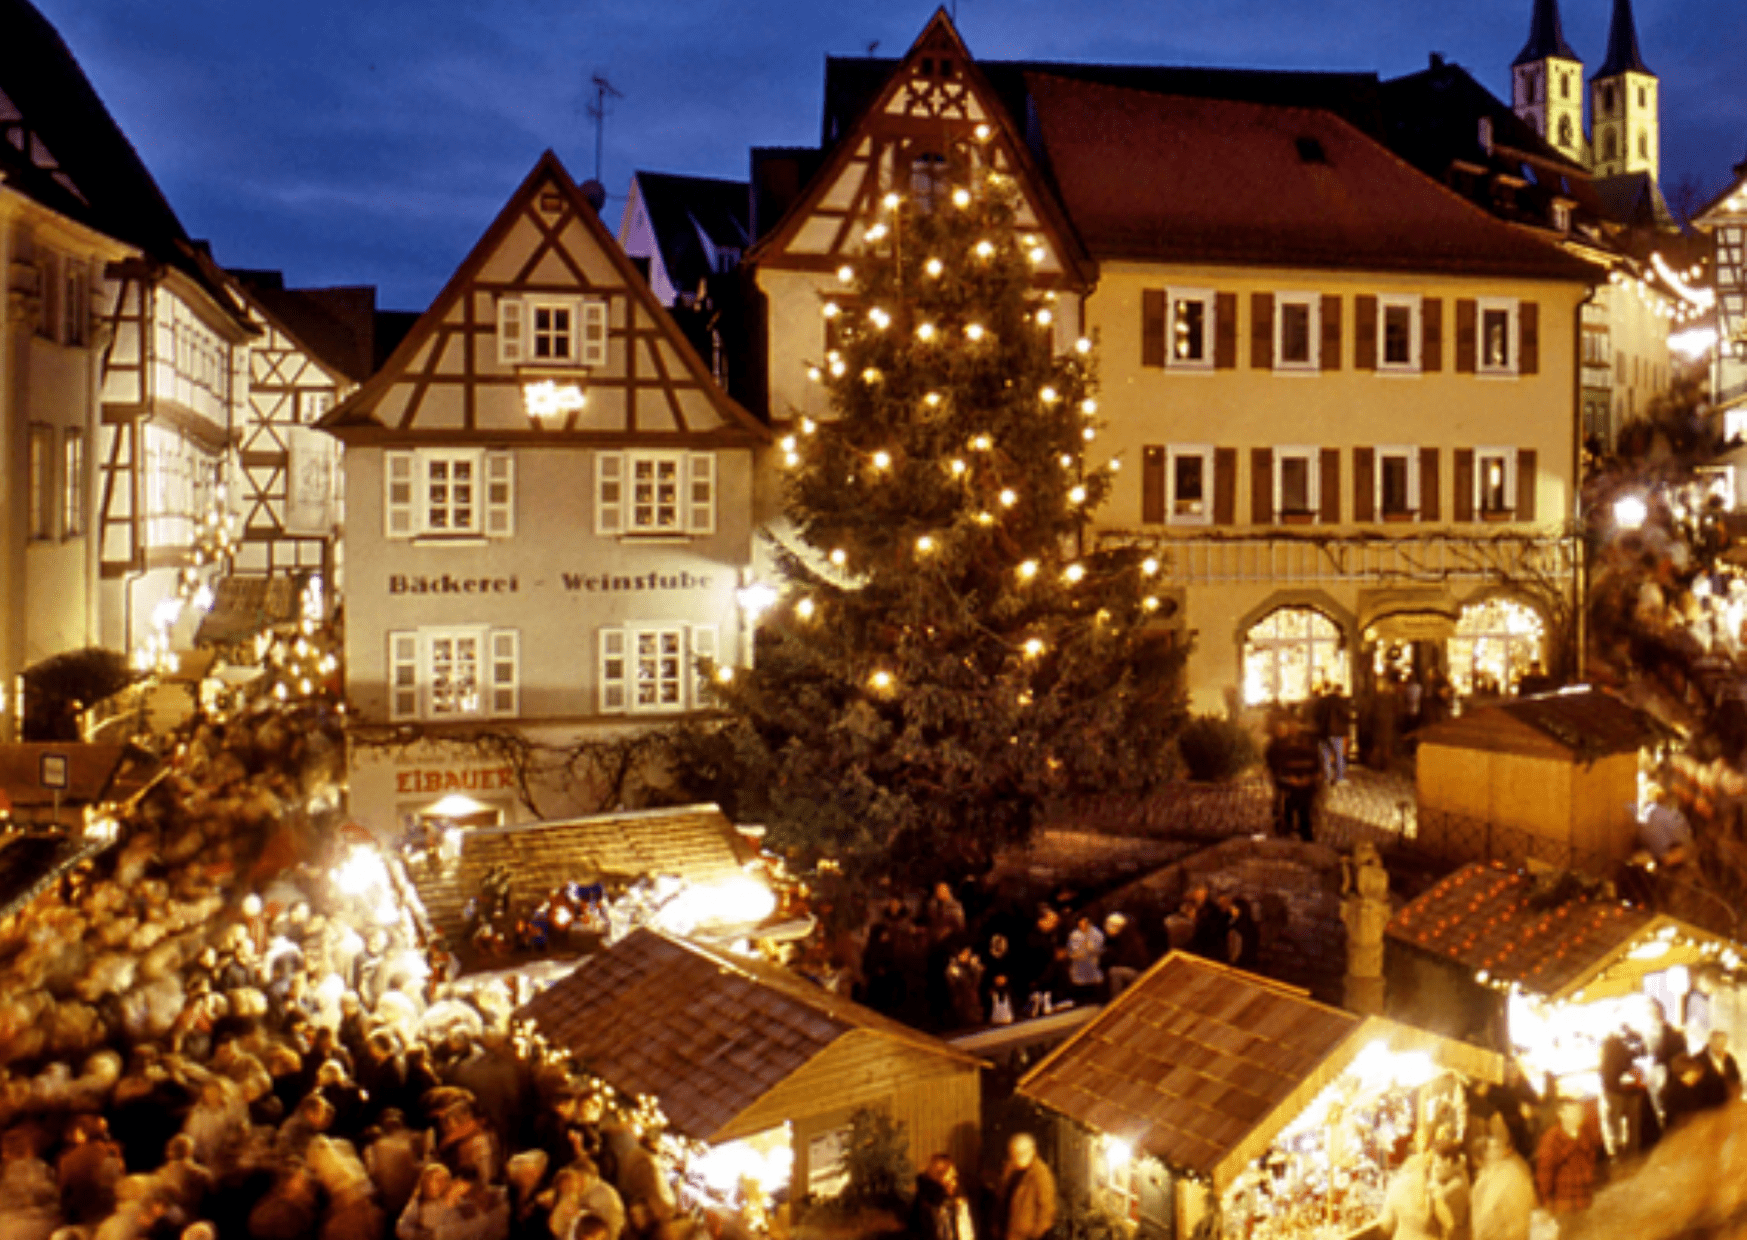 Bad Wimpfen Christmas market, the half-timbered houses of the town square make it one of the prettiest German Christmas markets